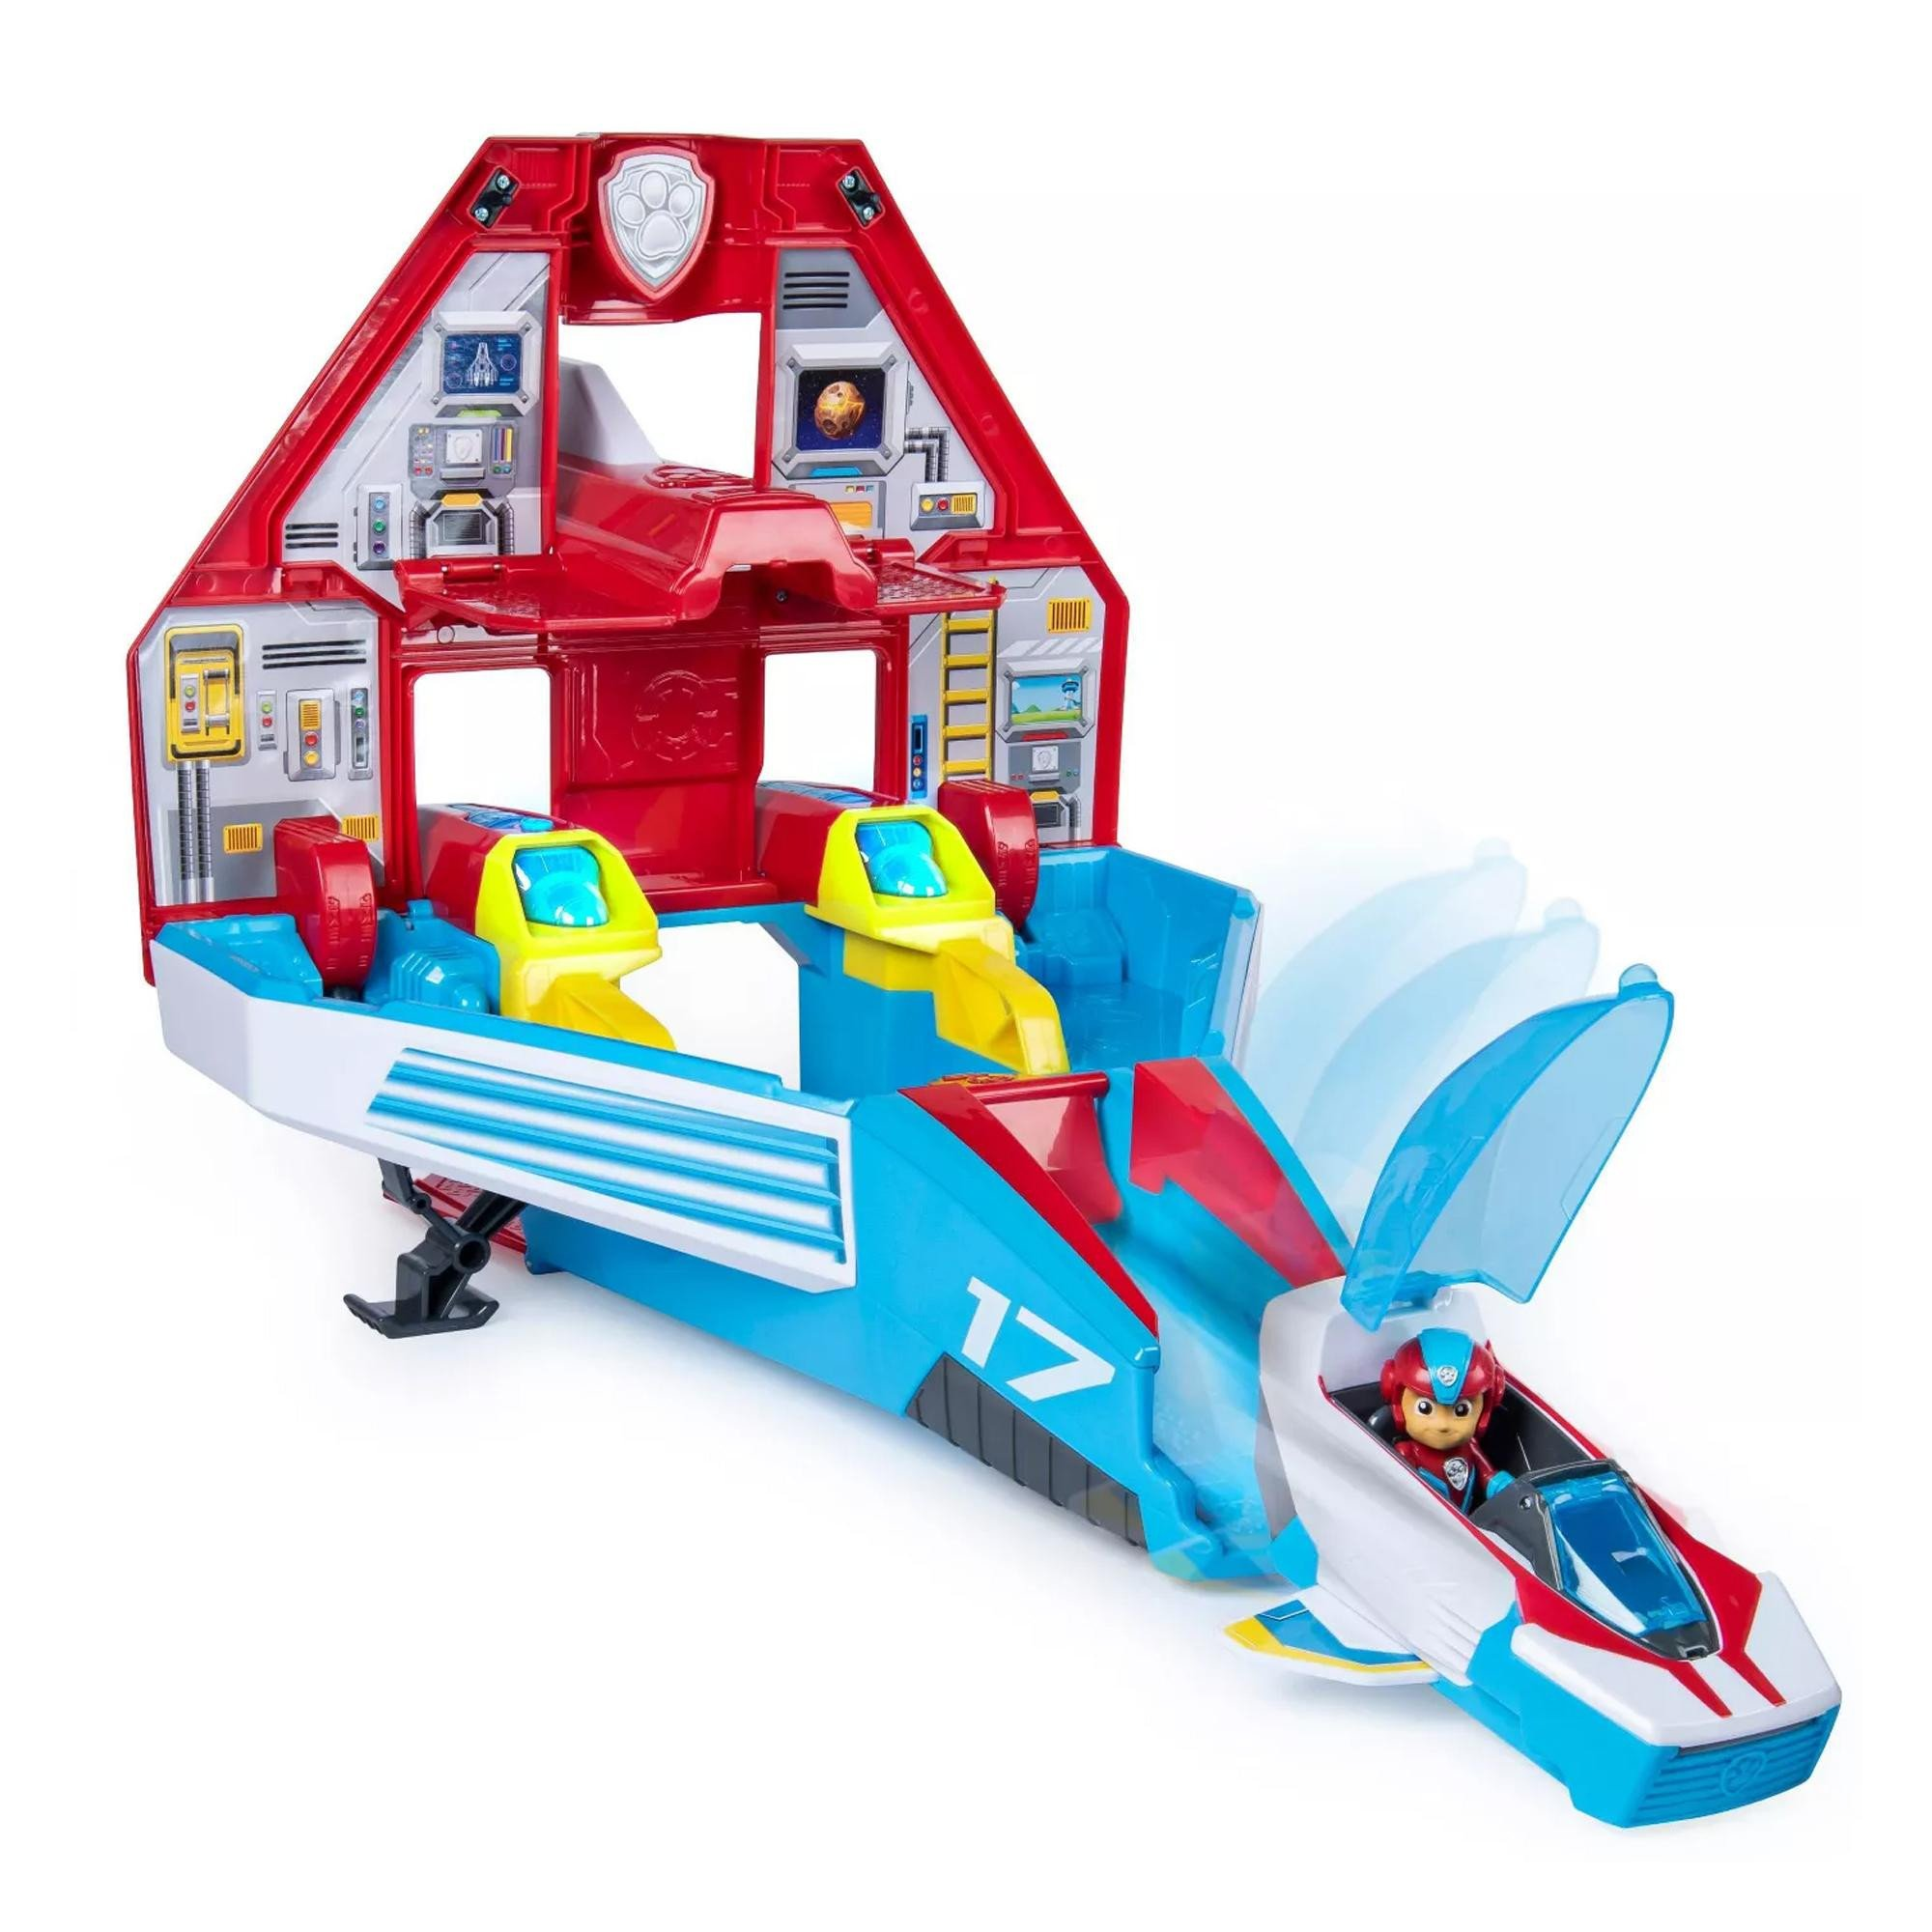 Paw Patrol Bedroom Set Awesome Spin Master Paw Patrol Super Mighty Pups Transforming Jet